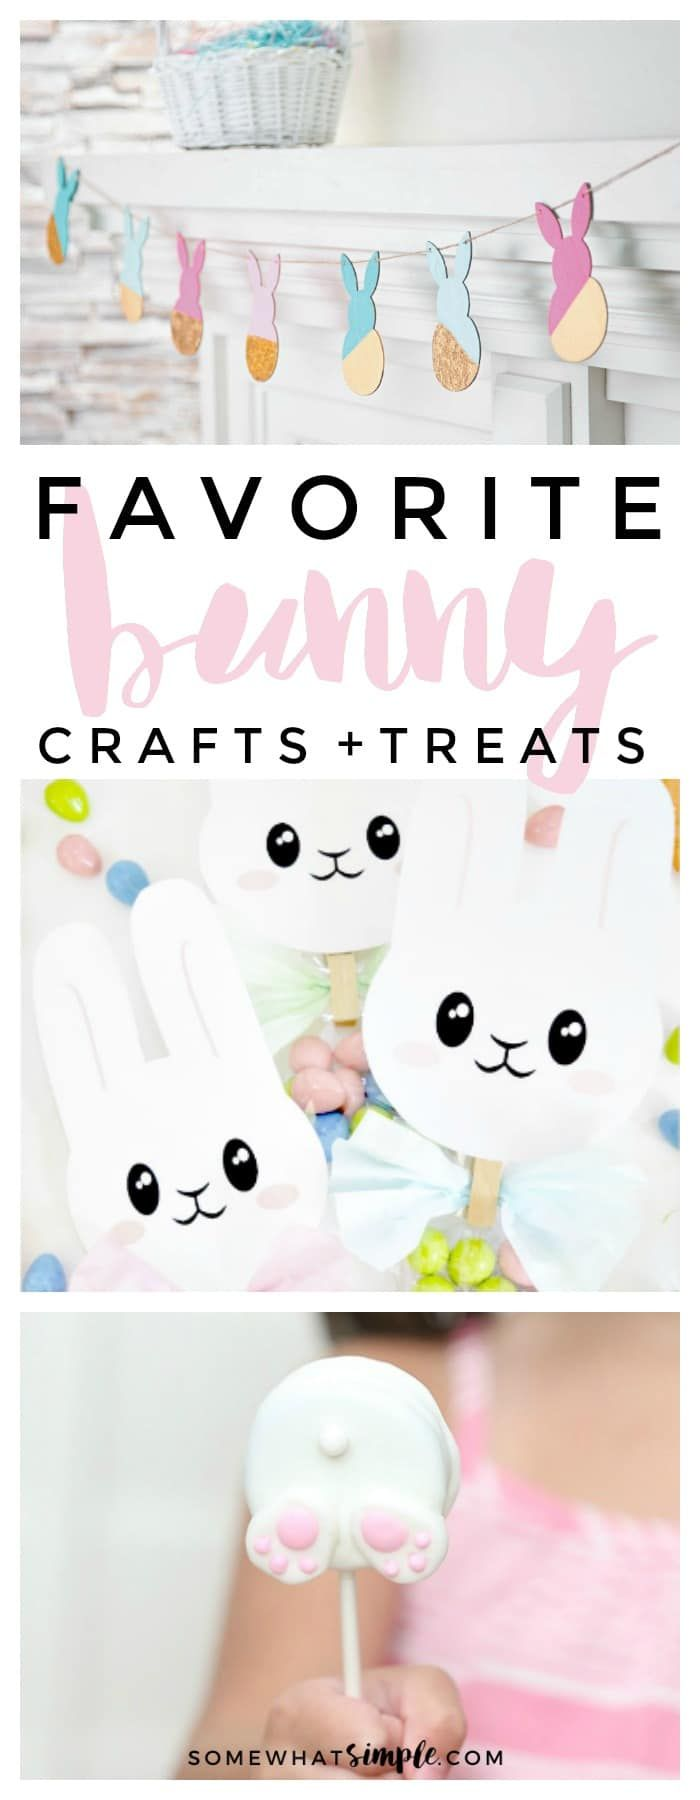 There's no better way to welcome Spring than by creating a few Easter Bunny Crafts!Here are some easy bunny crafts you can make to celebrate Easter!